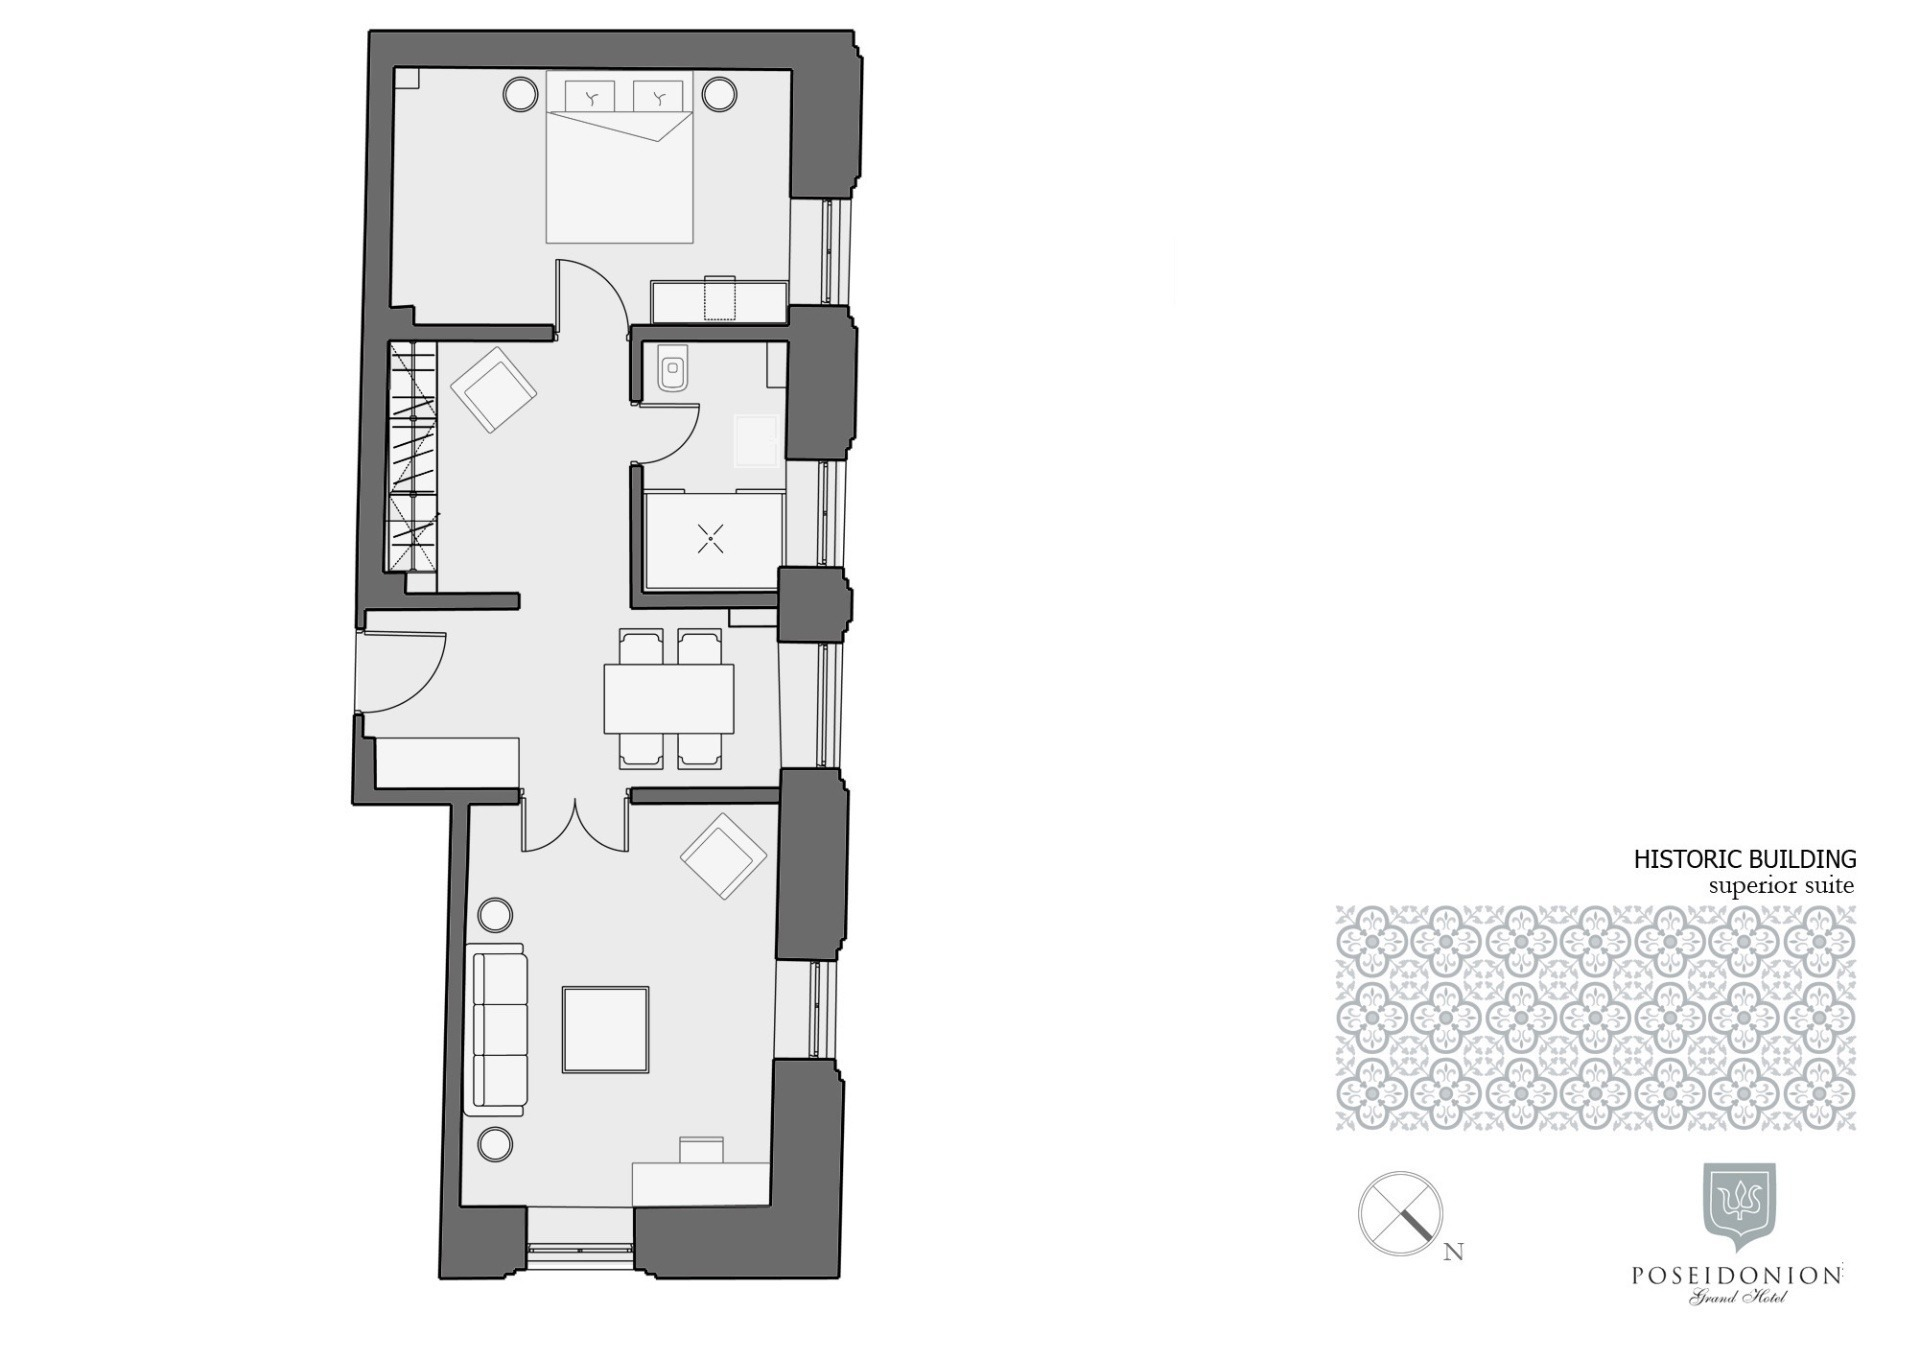 SUPERIOR_SUITE_117_FLOOR_PLAN